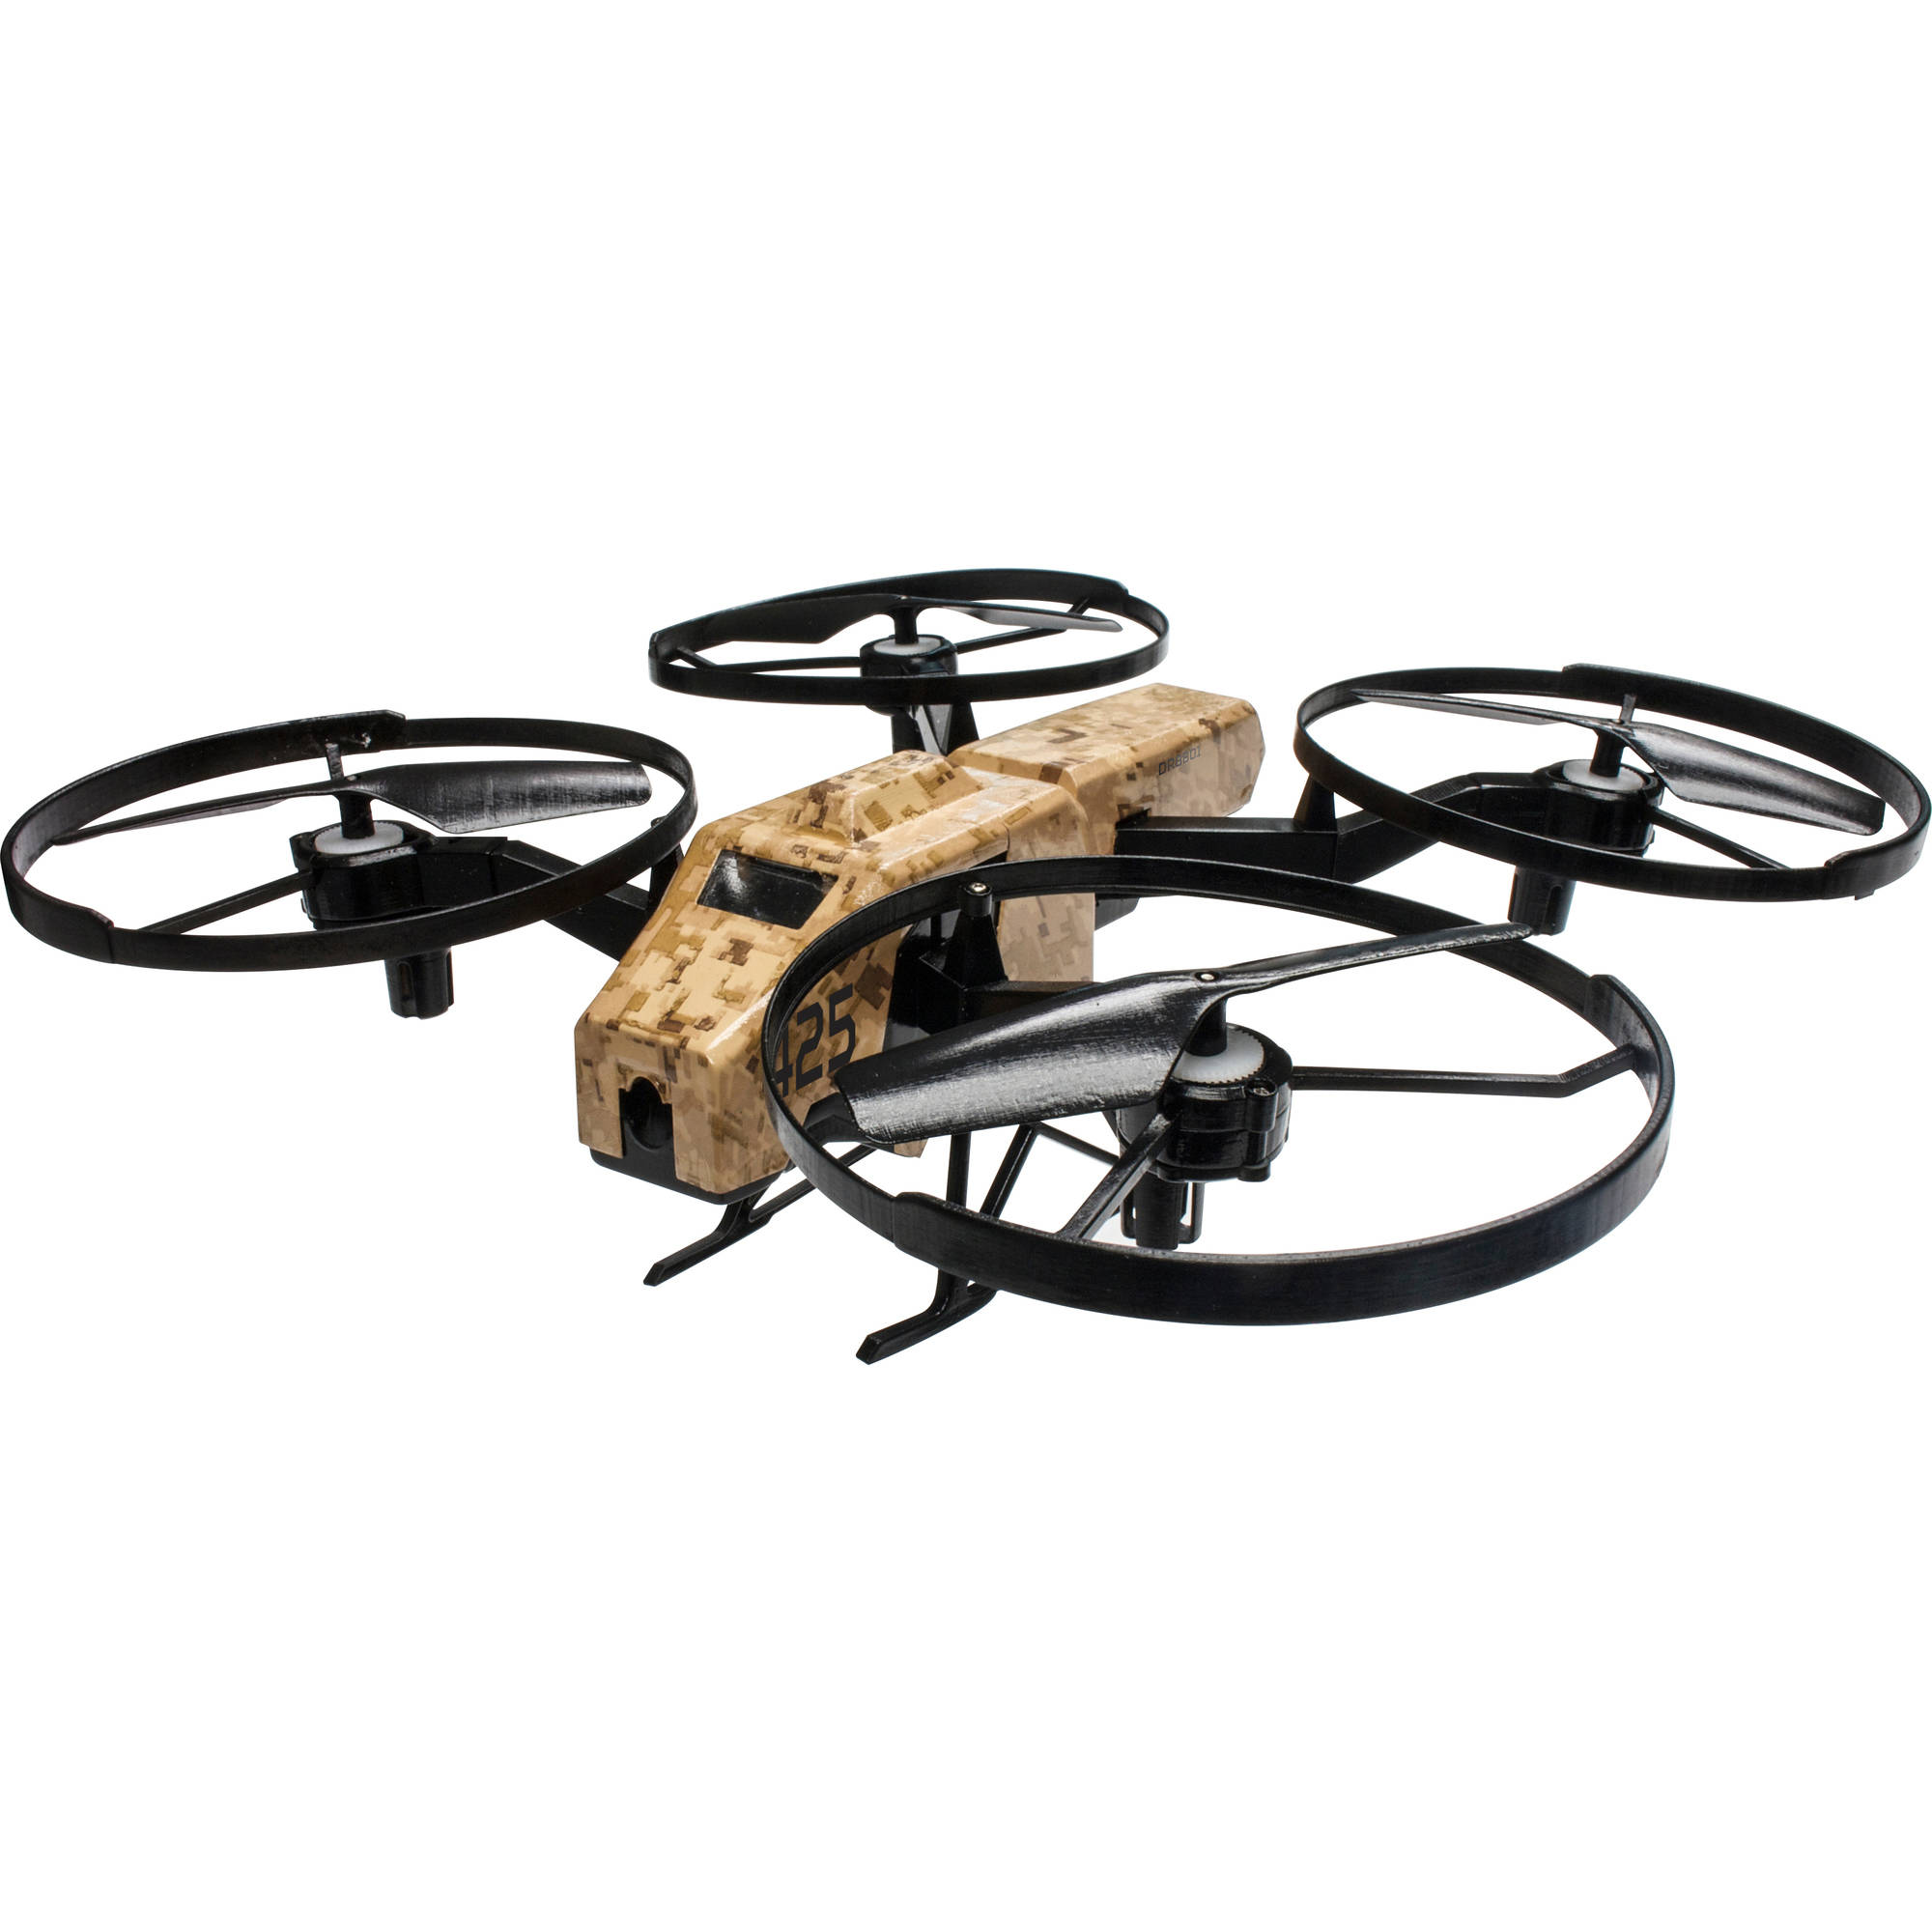 See More 100 Hot Drones